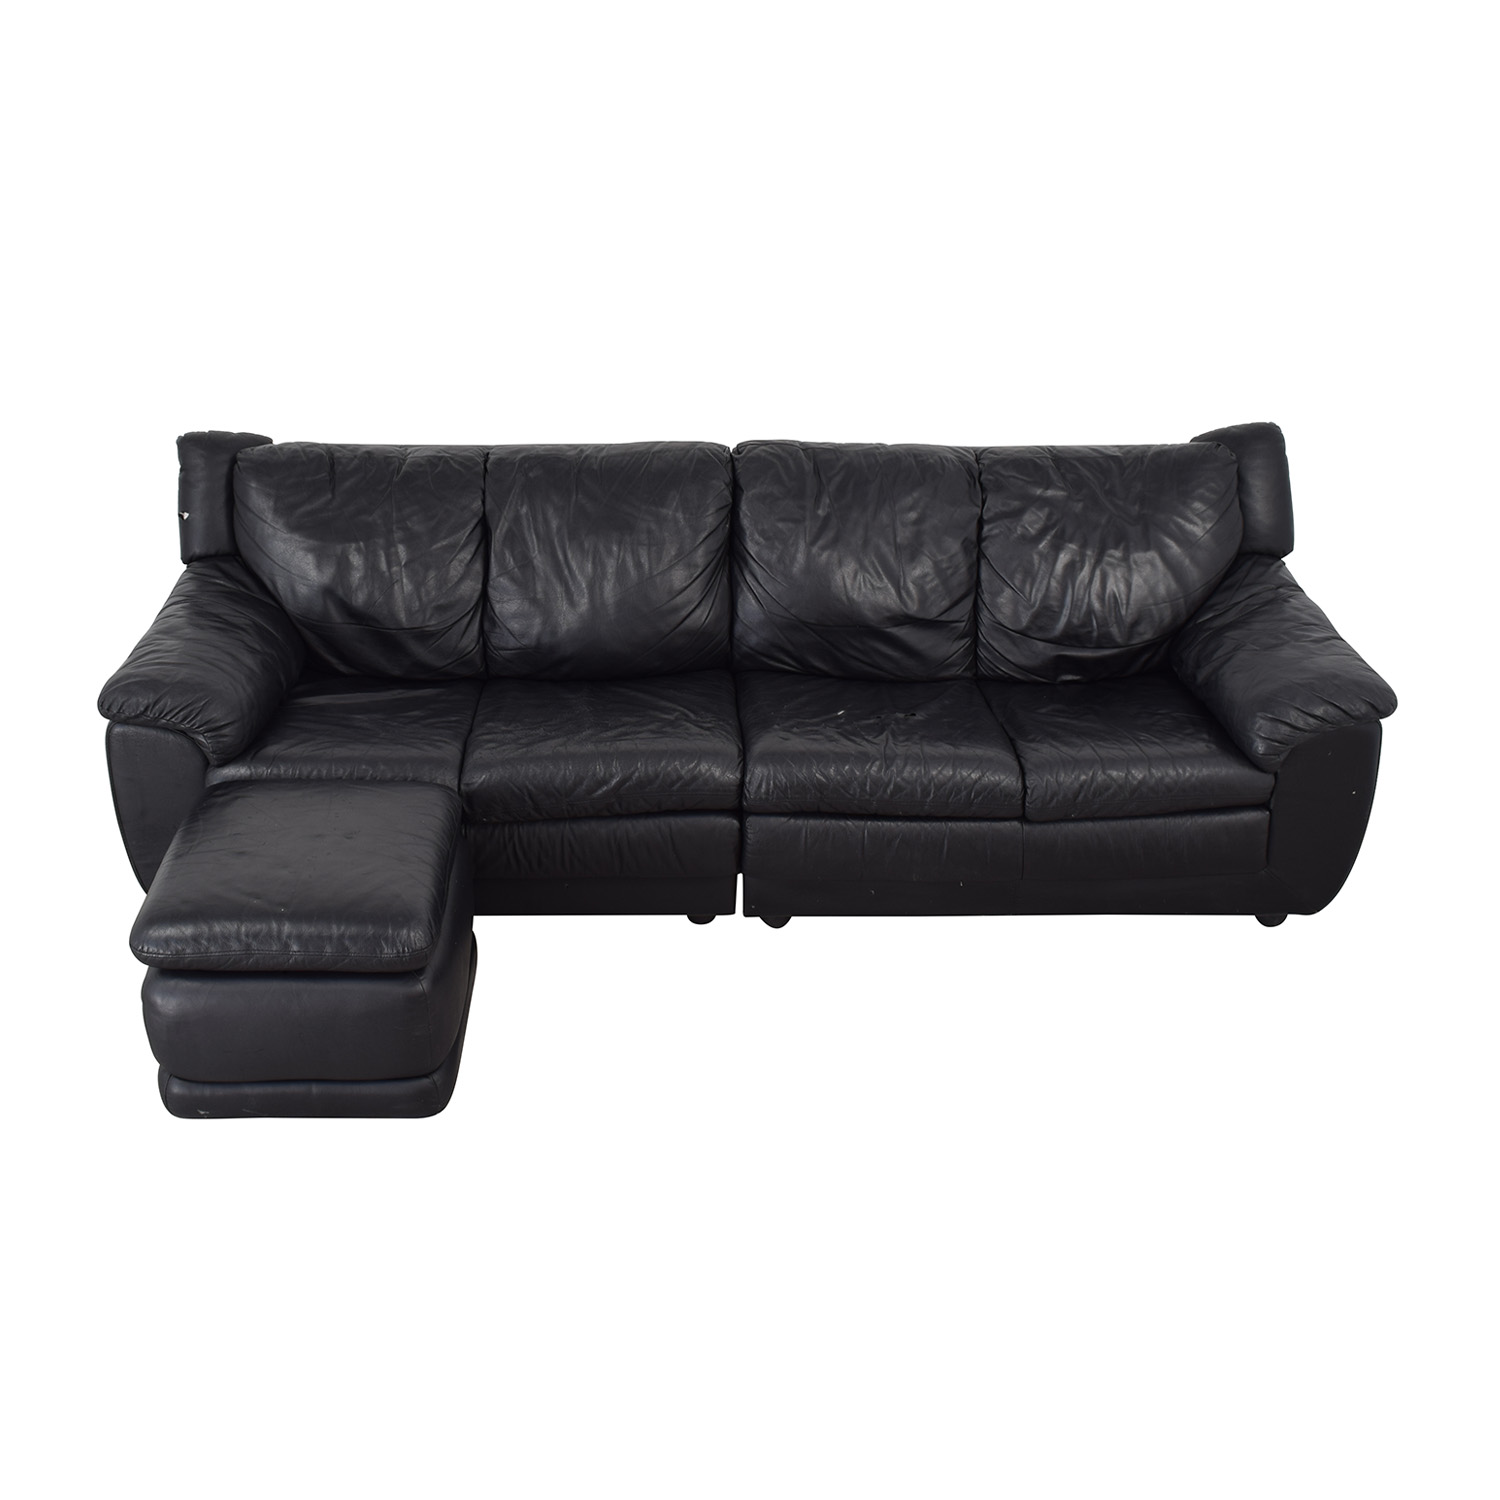 buy Nicoletti Home Black Four Cushion Couch with Ottoman Nicoletti Home Sectionals